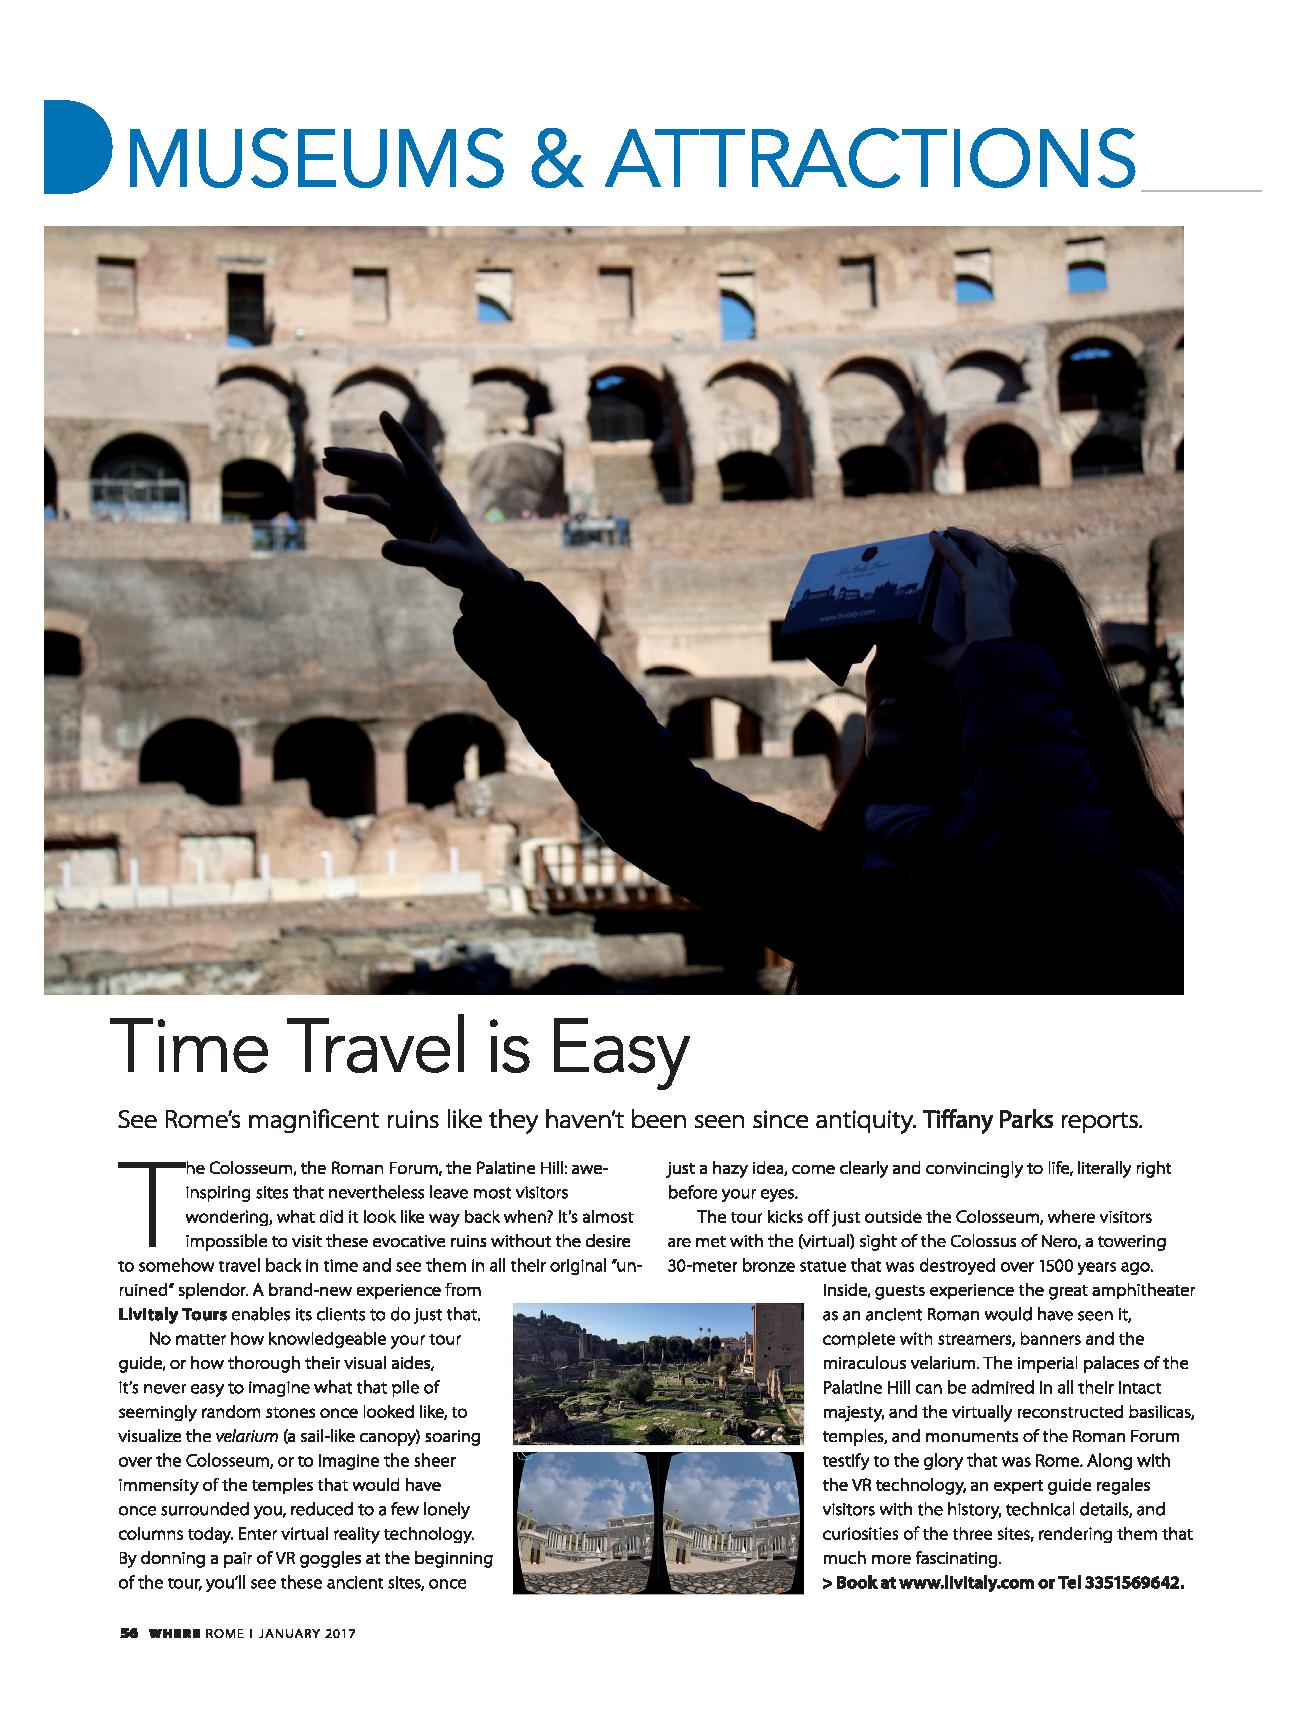 Time Travel is Easy, Where Rome, January 2017-page-001.jpg